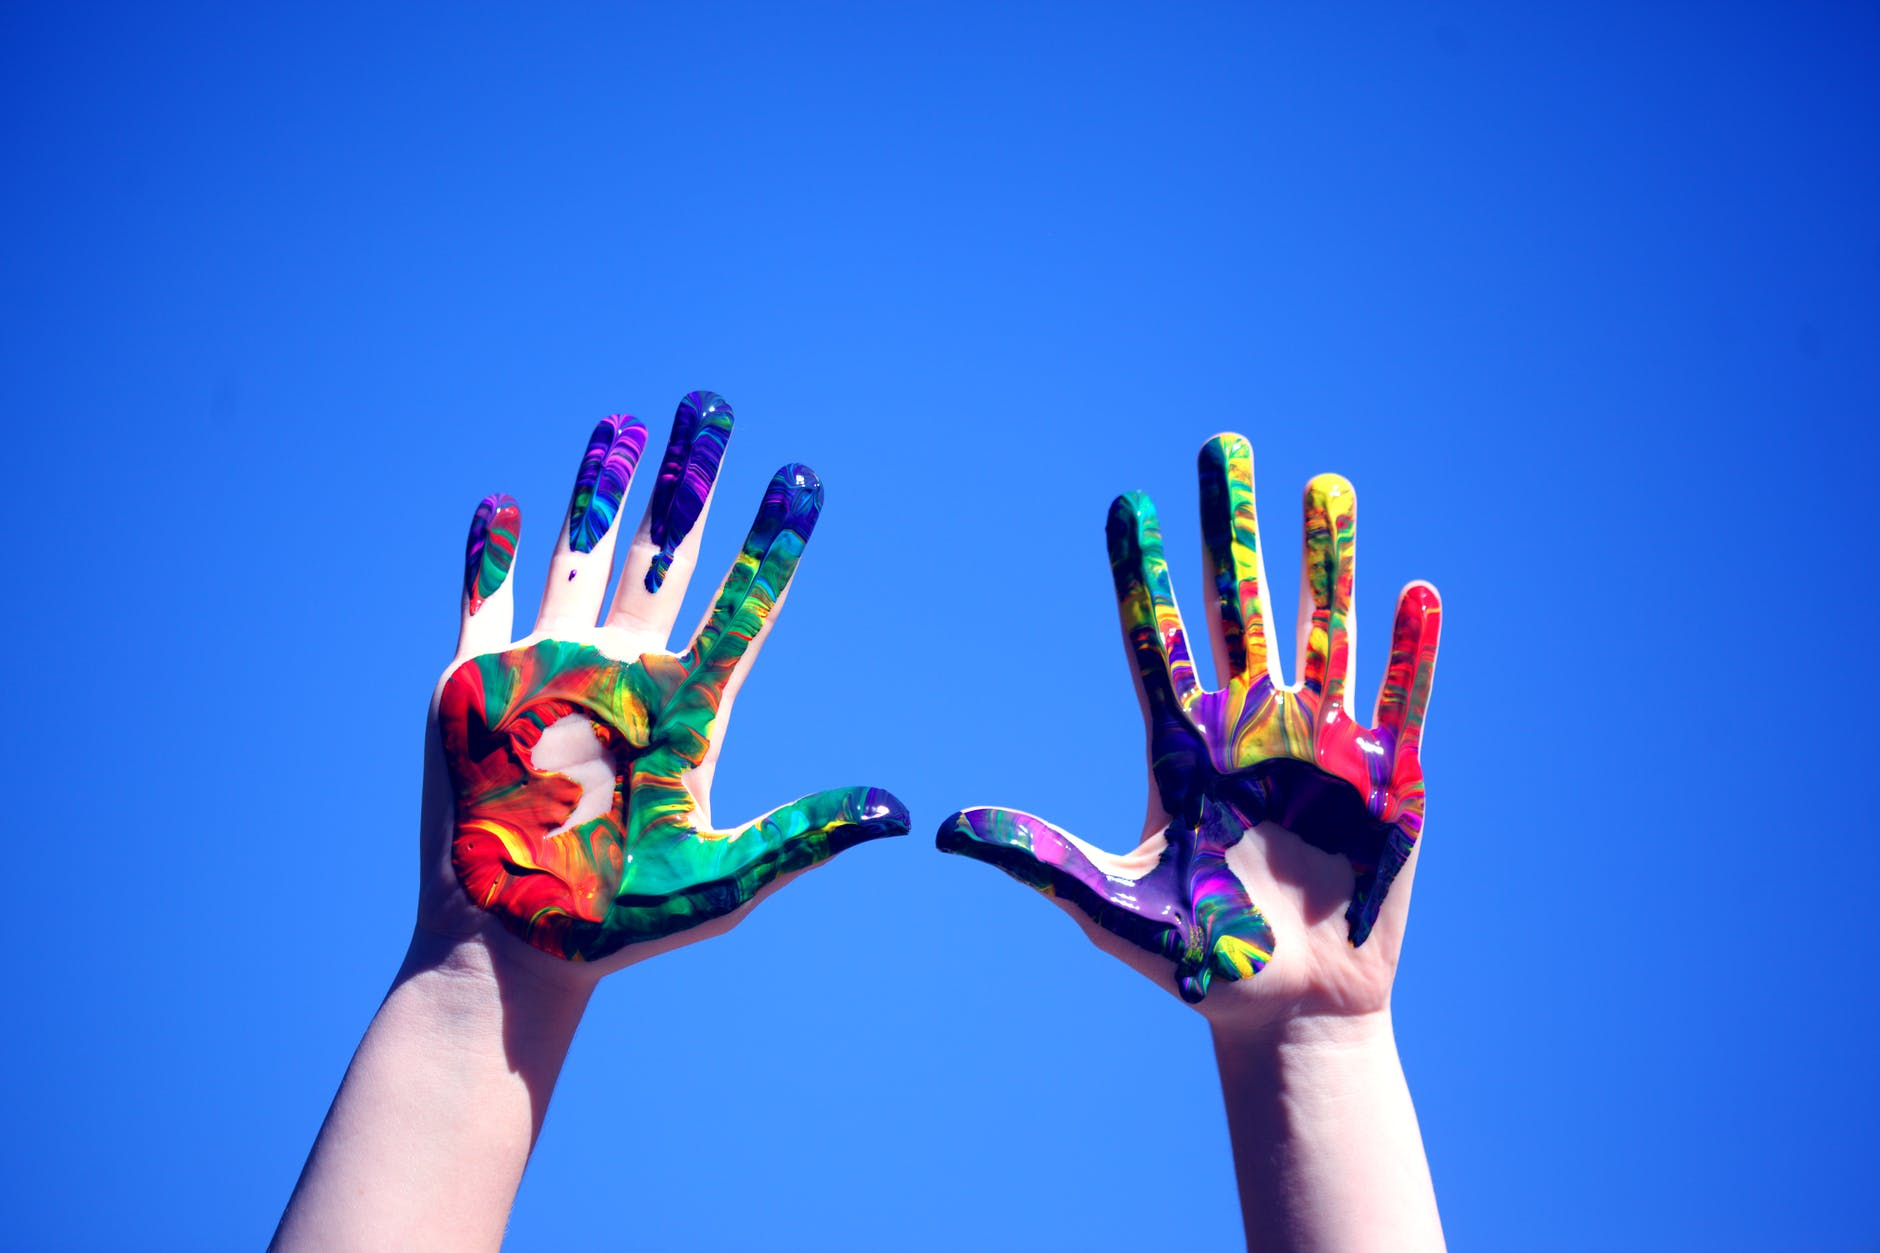 person s hands with paint